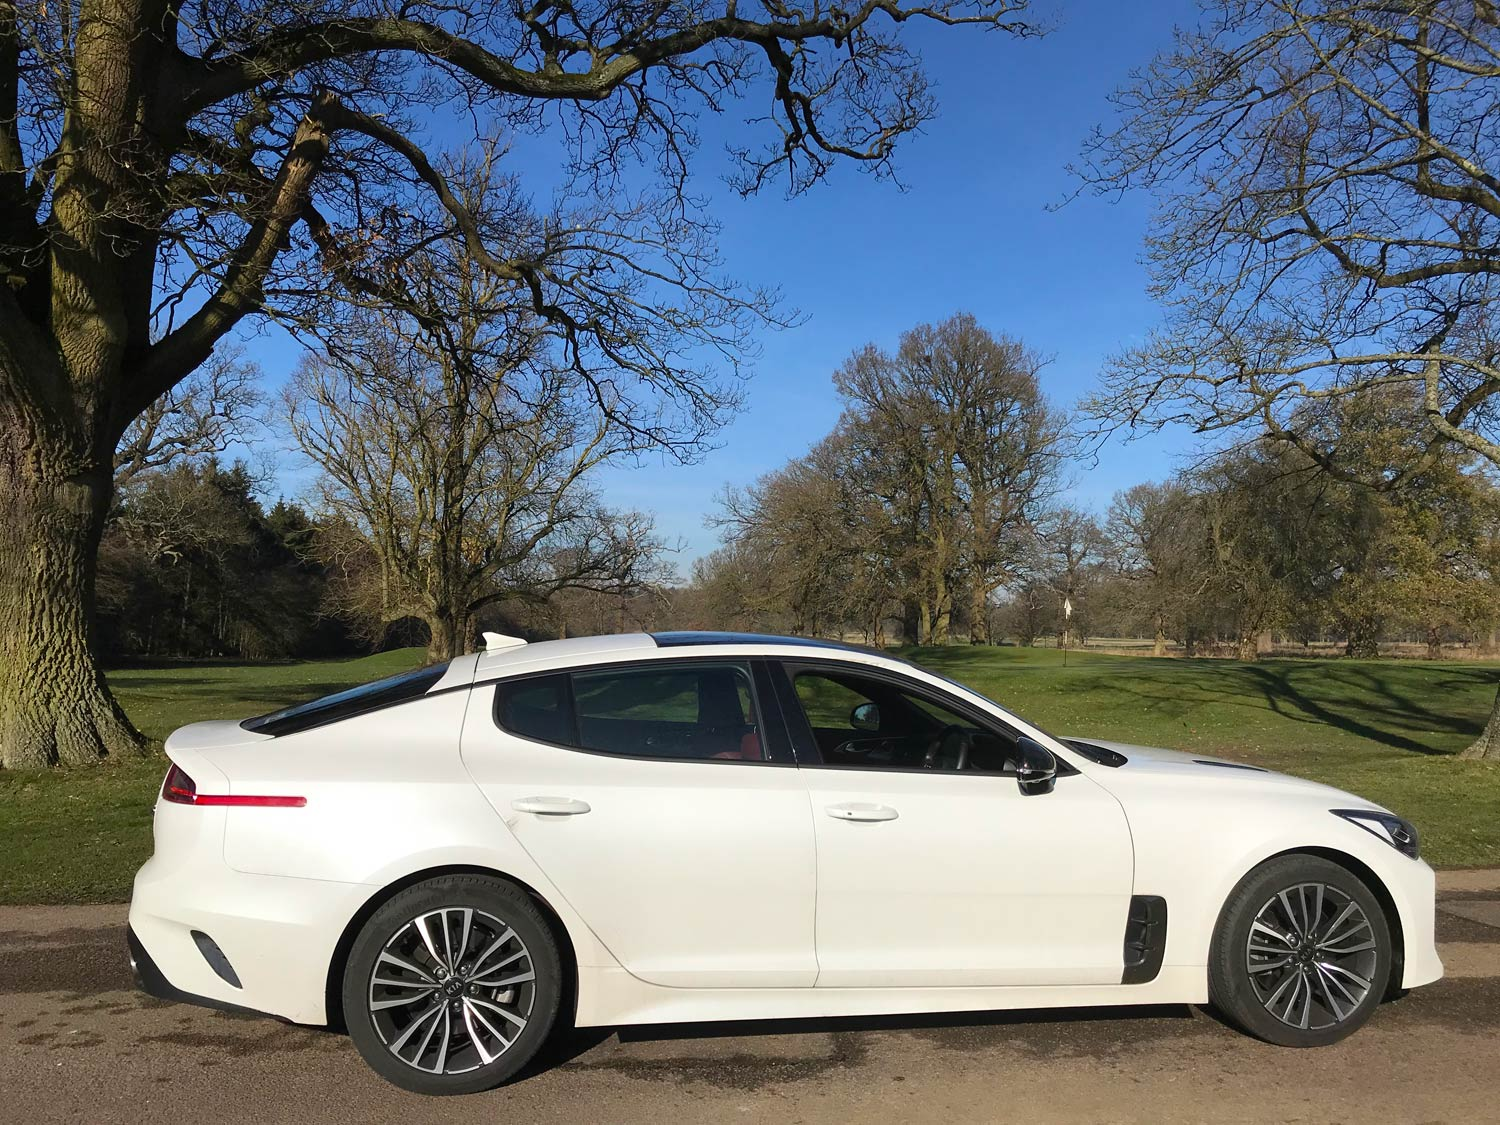 UK Road Test and Review of The KIA Stinger 2.0 T-GDi 'GT-Line' S 6